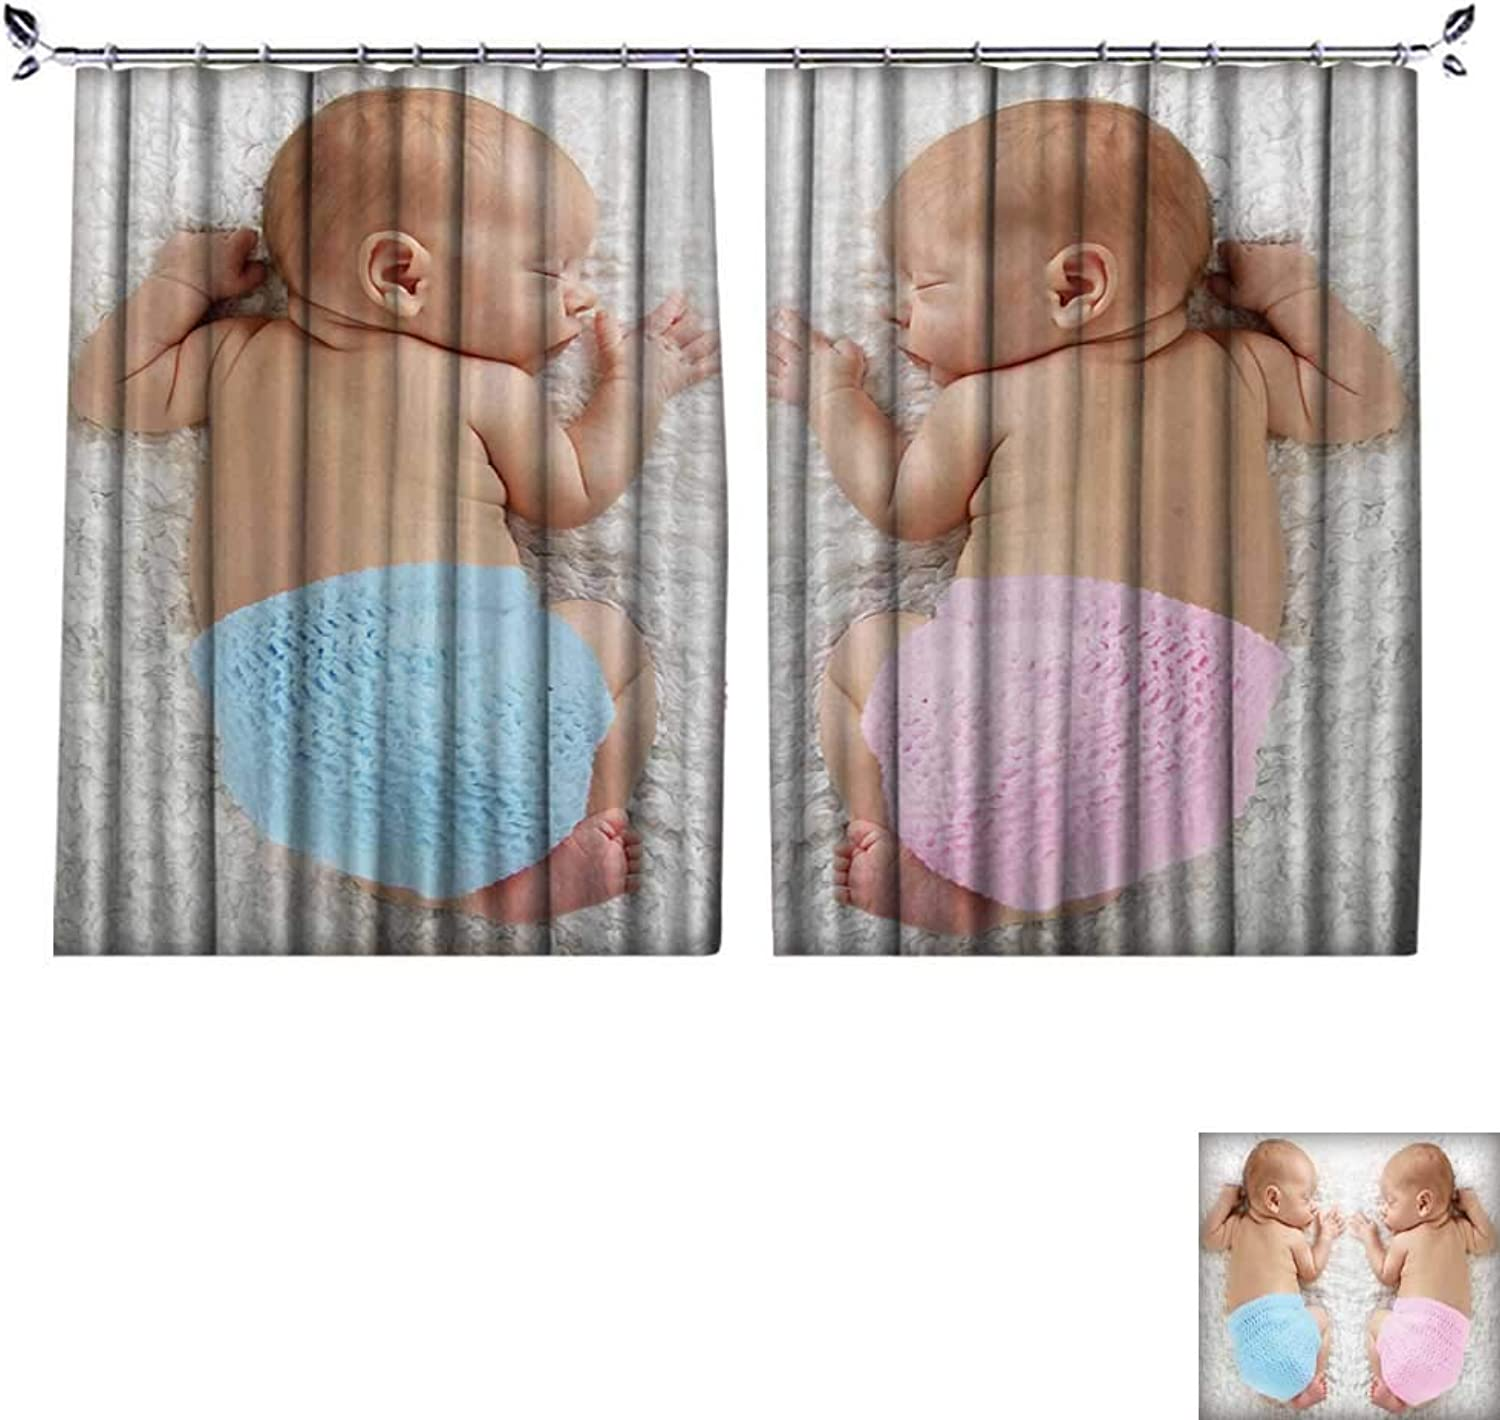 DESPKON UV-Proof Polyester Material Newborn Twin Babies,boy and Girl,Sleeping on a White Blanket. Floor Curtains W55 x L39